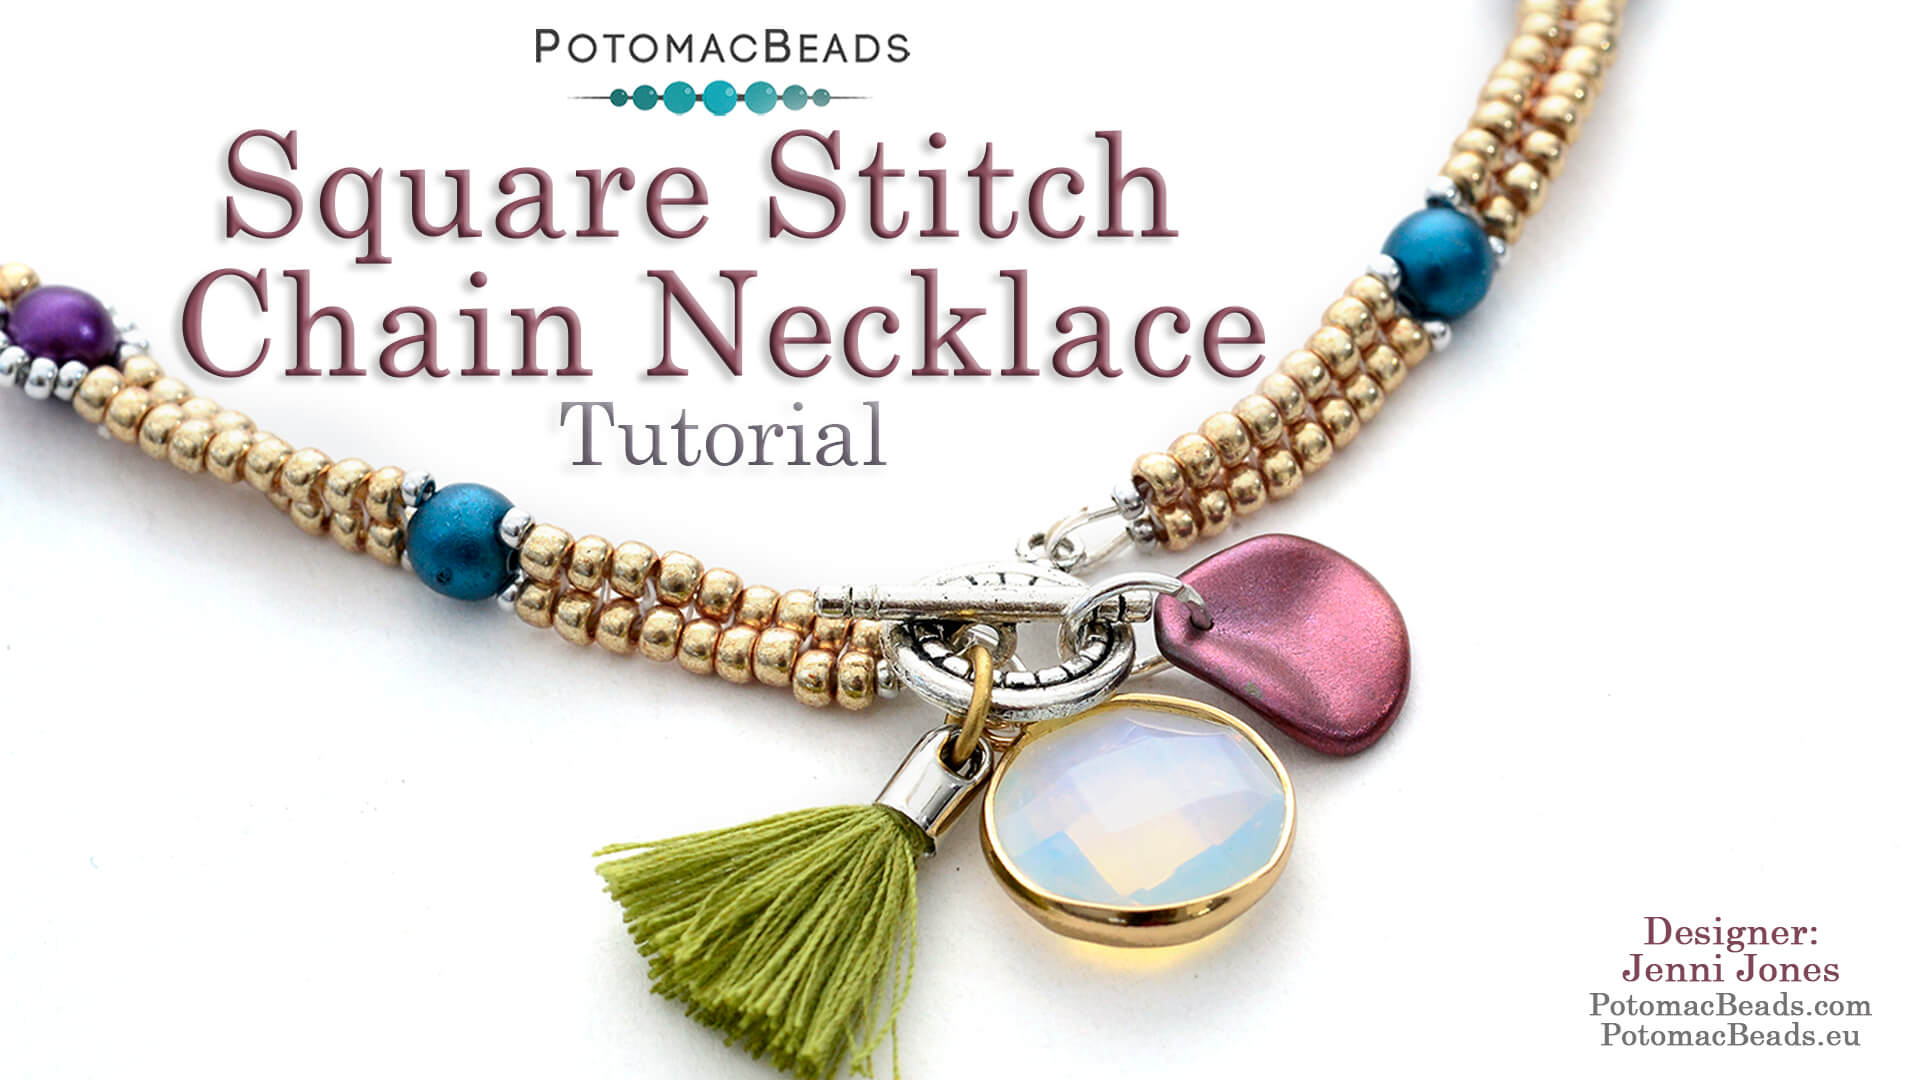 How to Bead / Videos Sorted by Beads / Gemstone Videos / Square Stitch Chain Necklace Tutorial